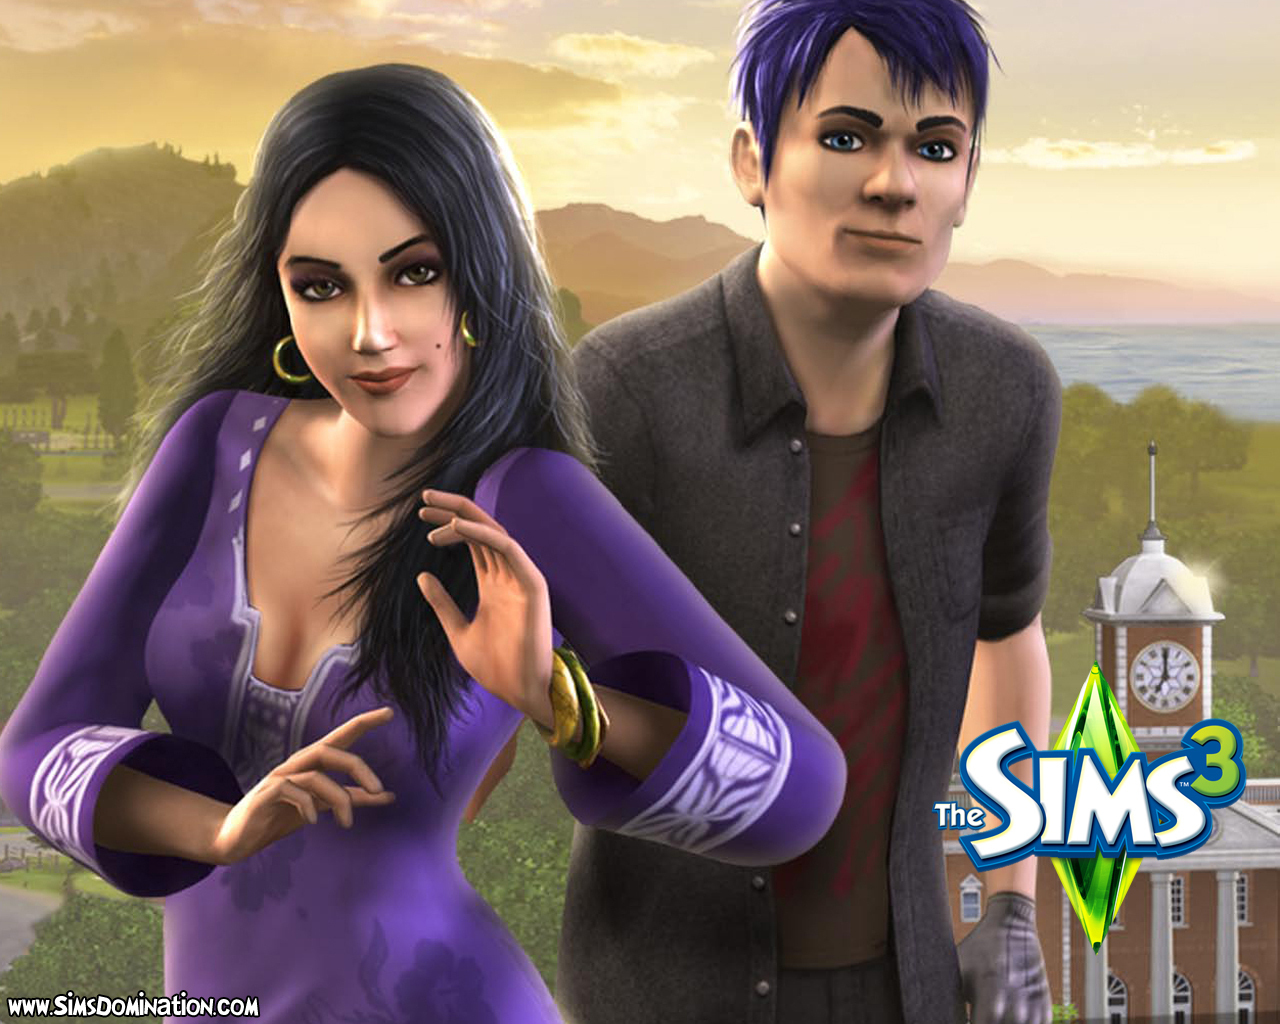 The Sims 3: World Adventures Wallpapers 4